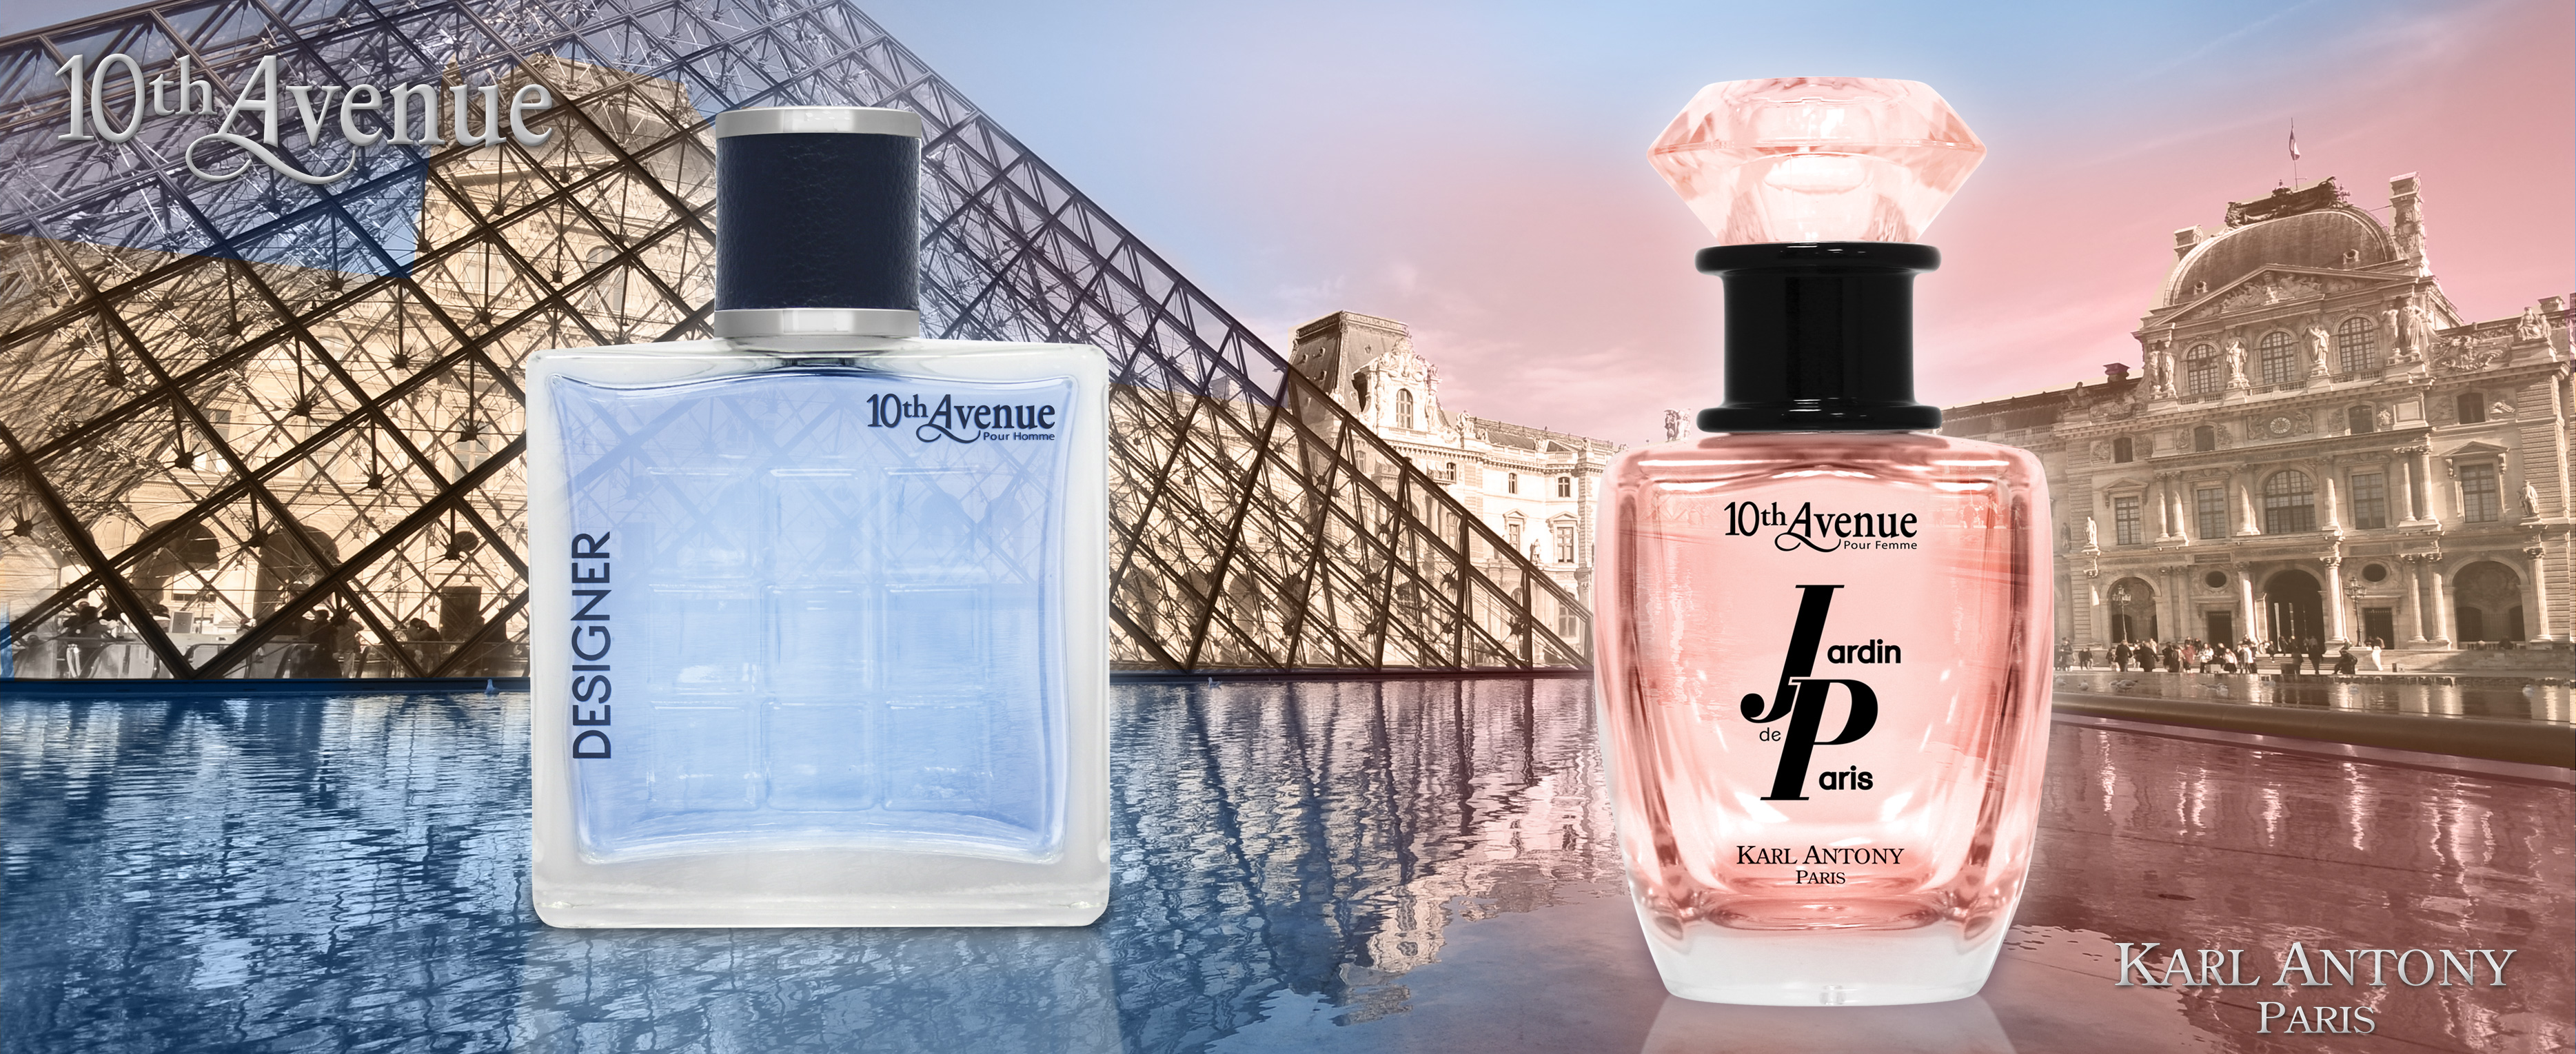 Parfums-JJV-Vivier-10th-Avenue-Karl-Antony-accueil-DESIGNER-JDP